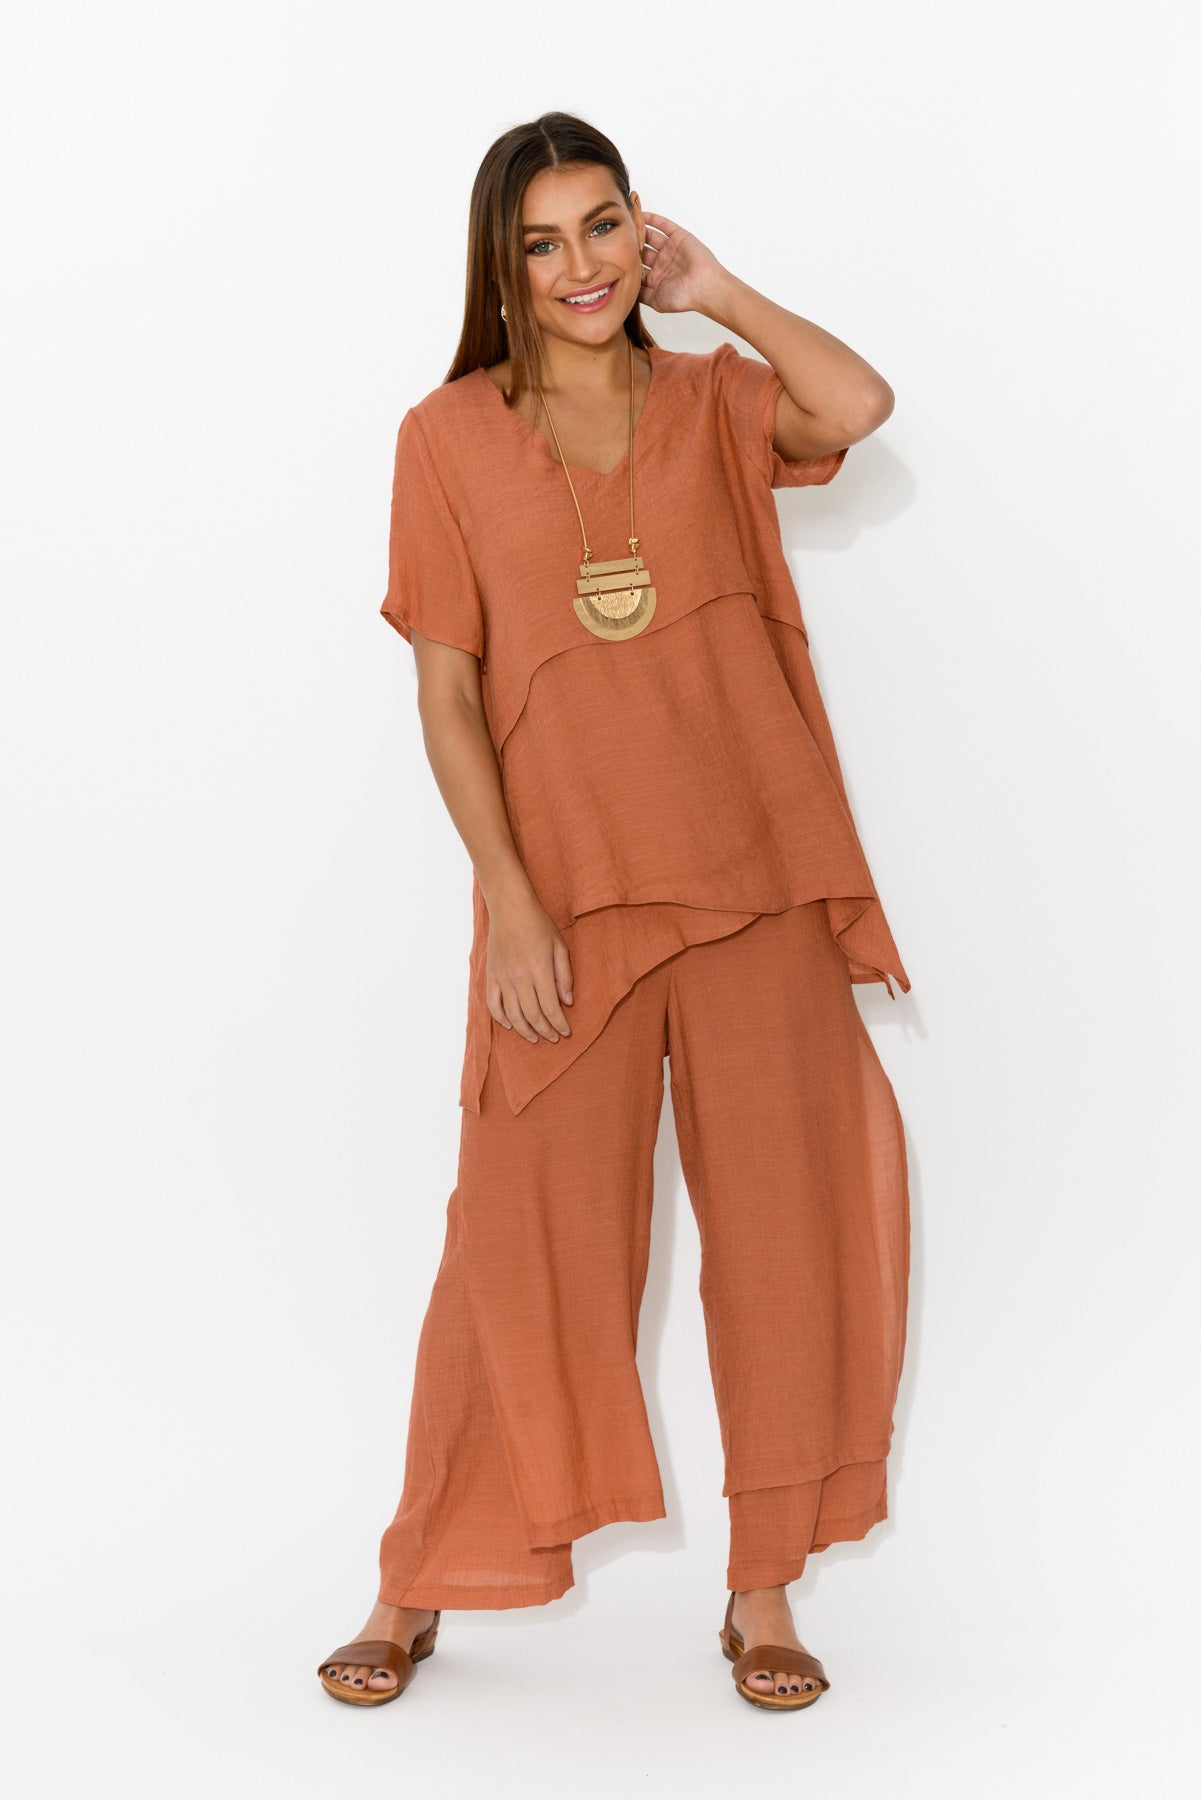 Rust Layered Wide Leg Pant - Blue Bungalow